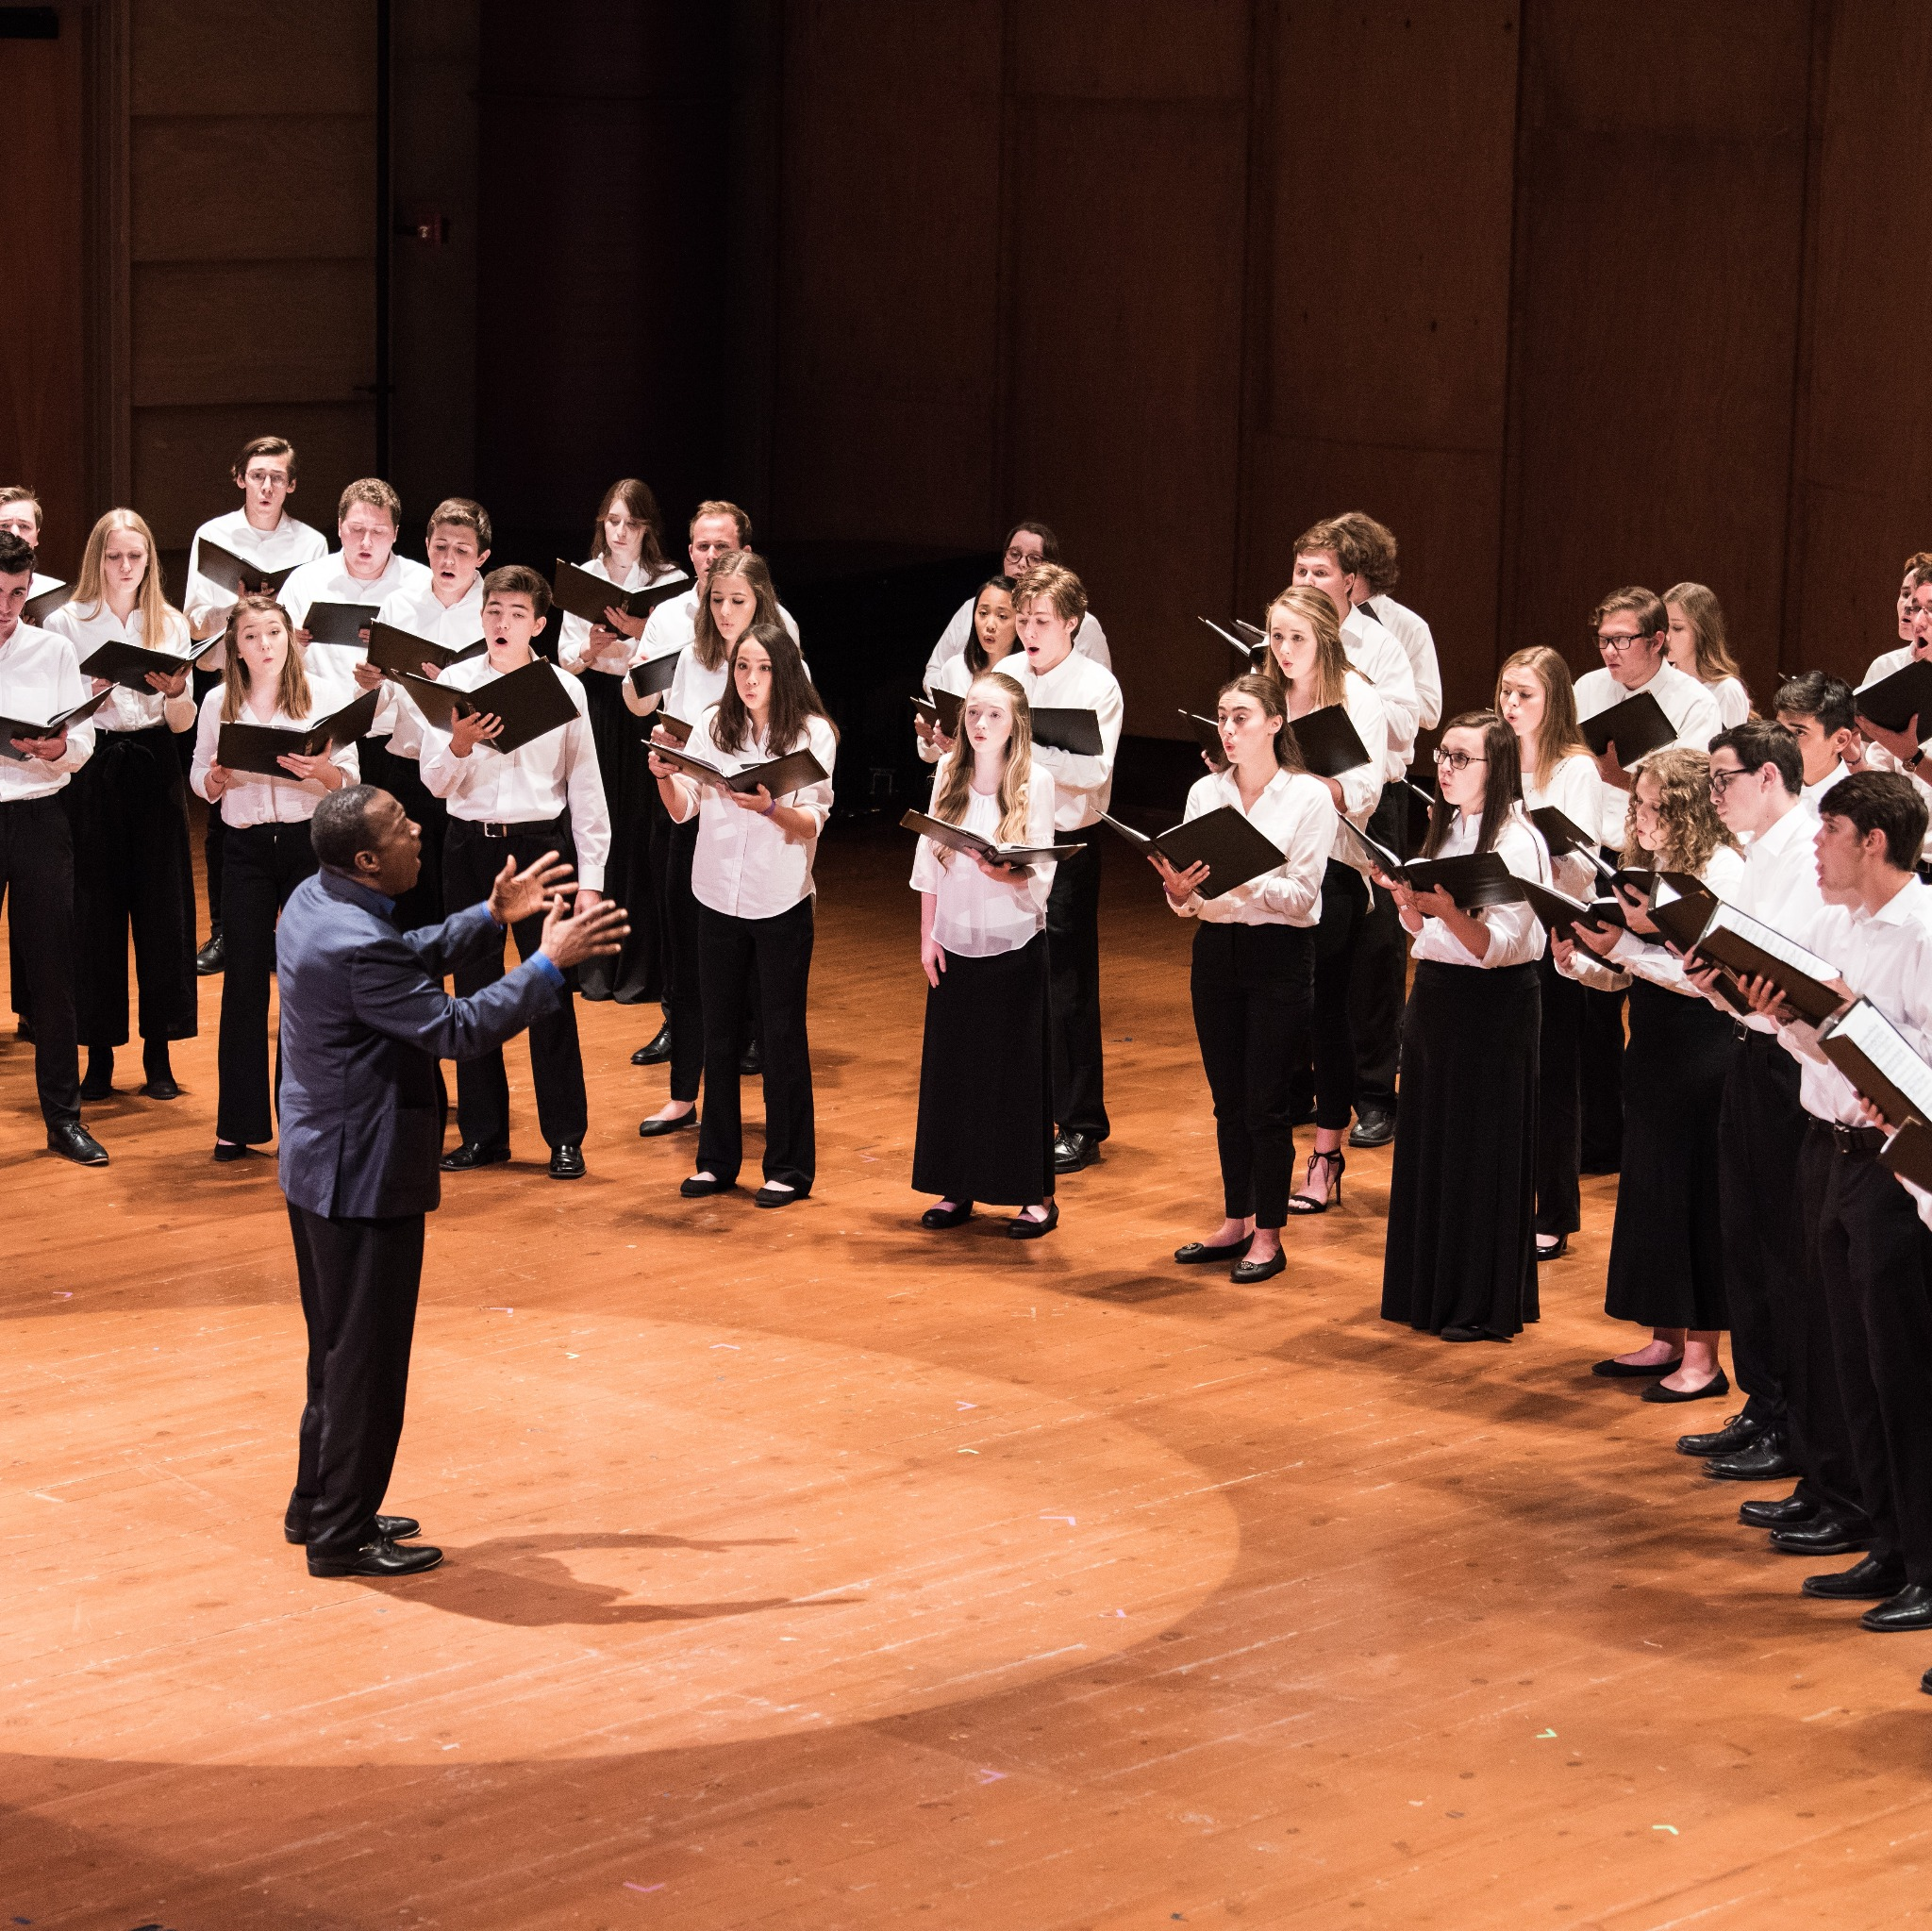 OSAI 2018 Institute Chorus Performances – Video